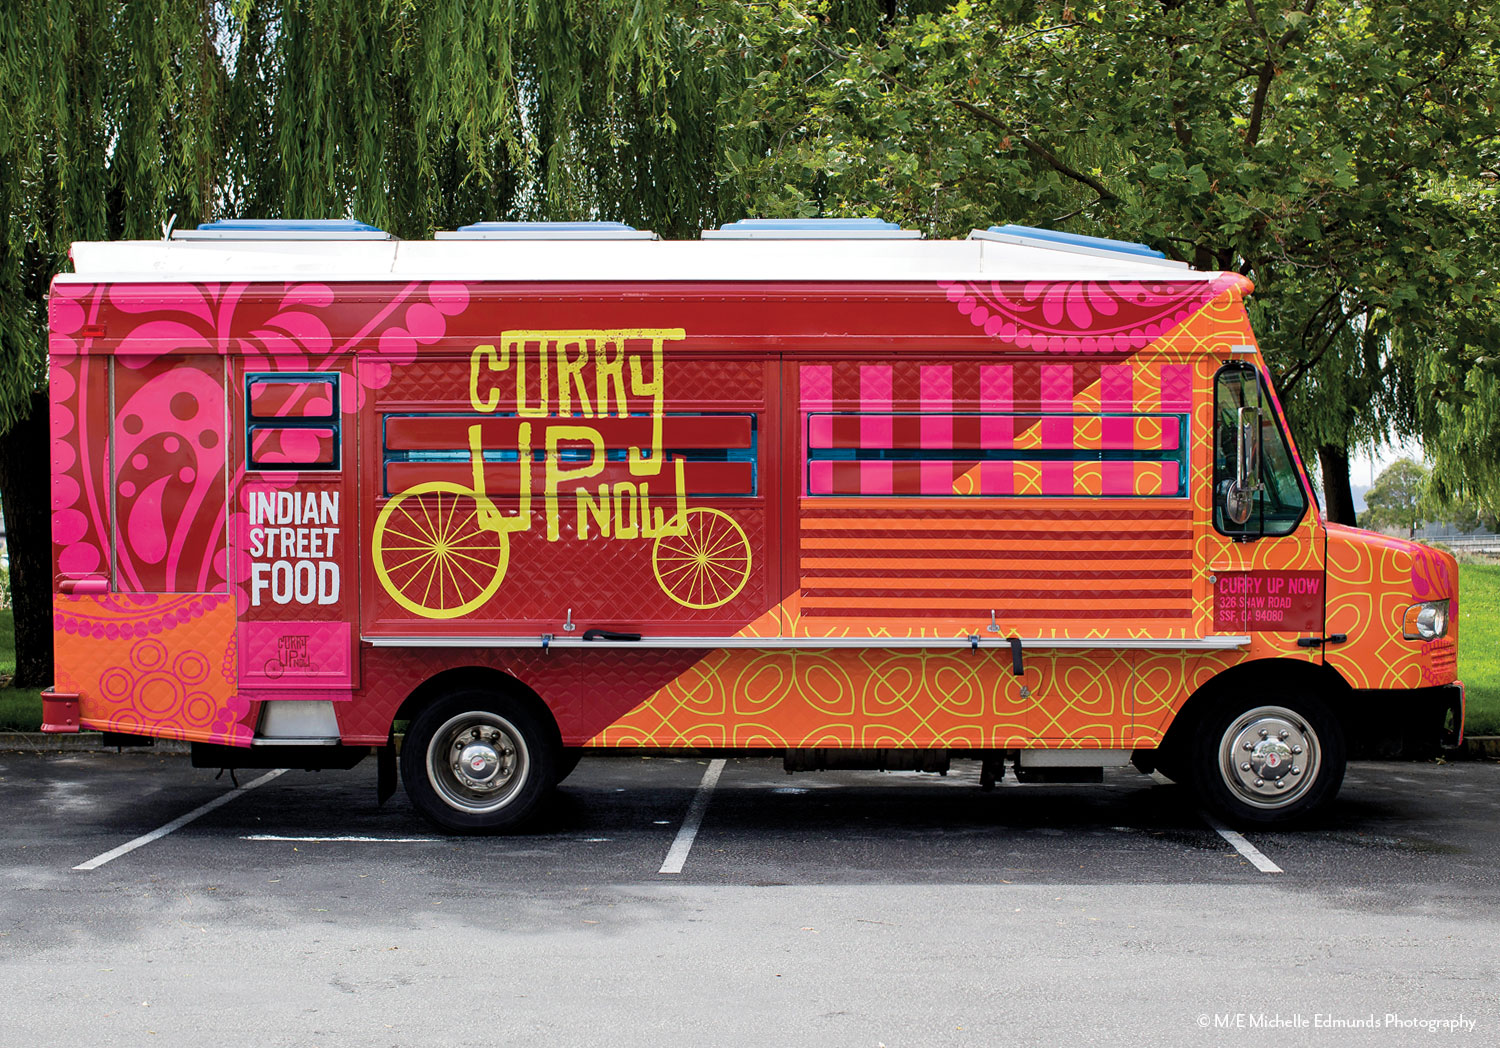 curry up now restaurant food mobile food truck wrap design@2x